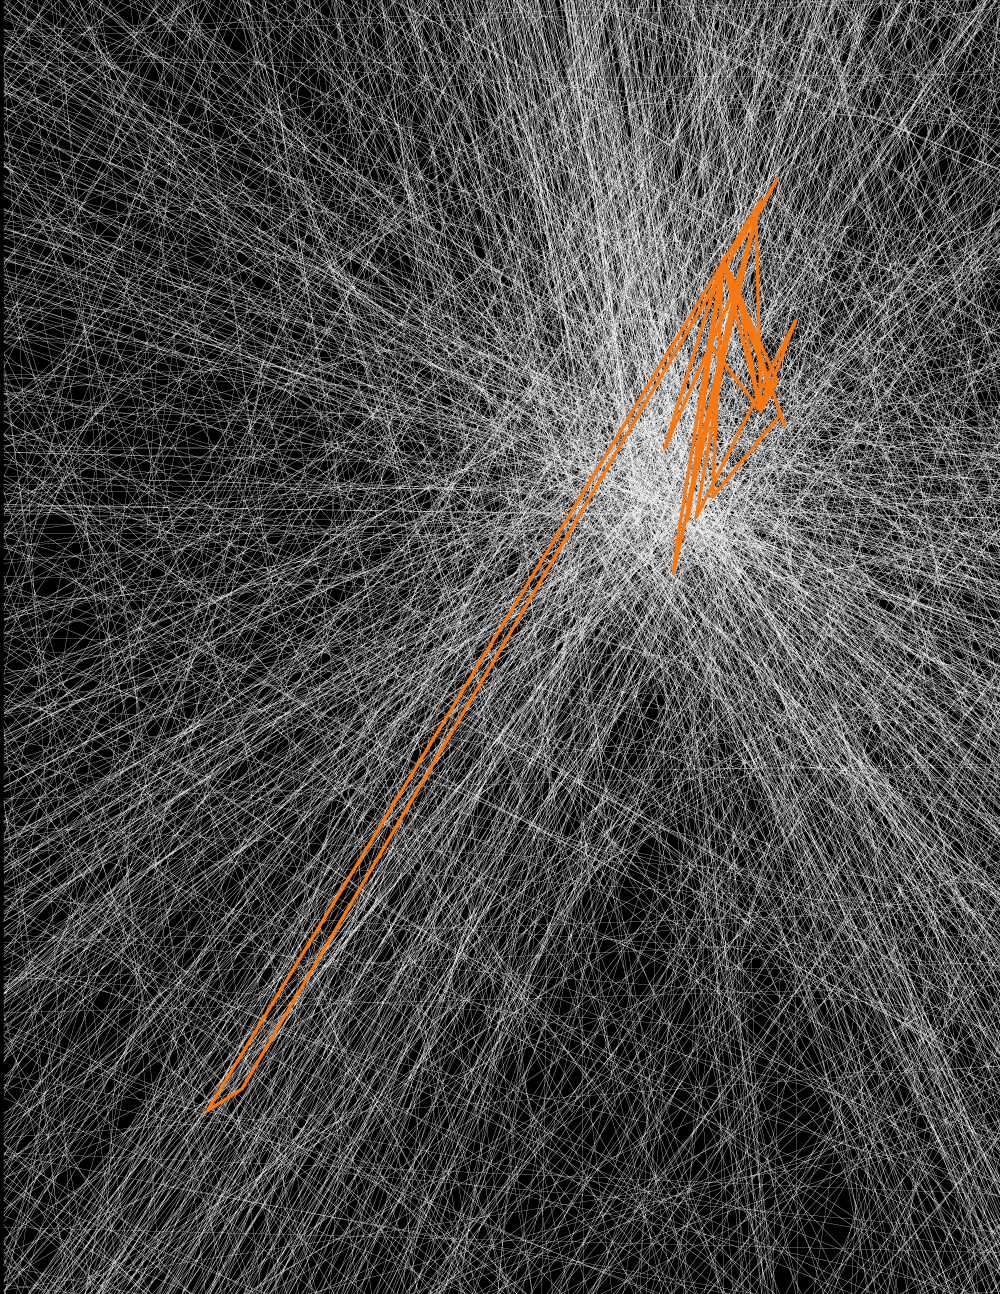 Countless white lines on a black background run to a vanishing point. Overlaid on top are jagged orange lines.